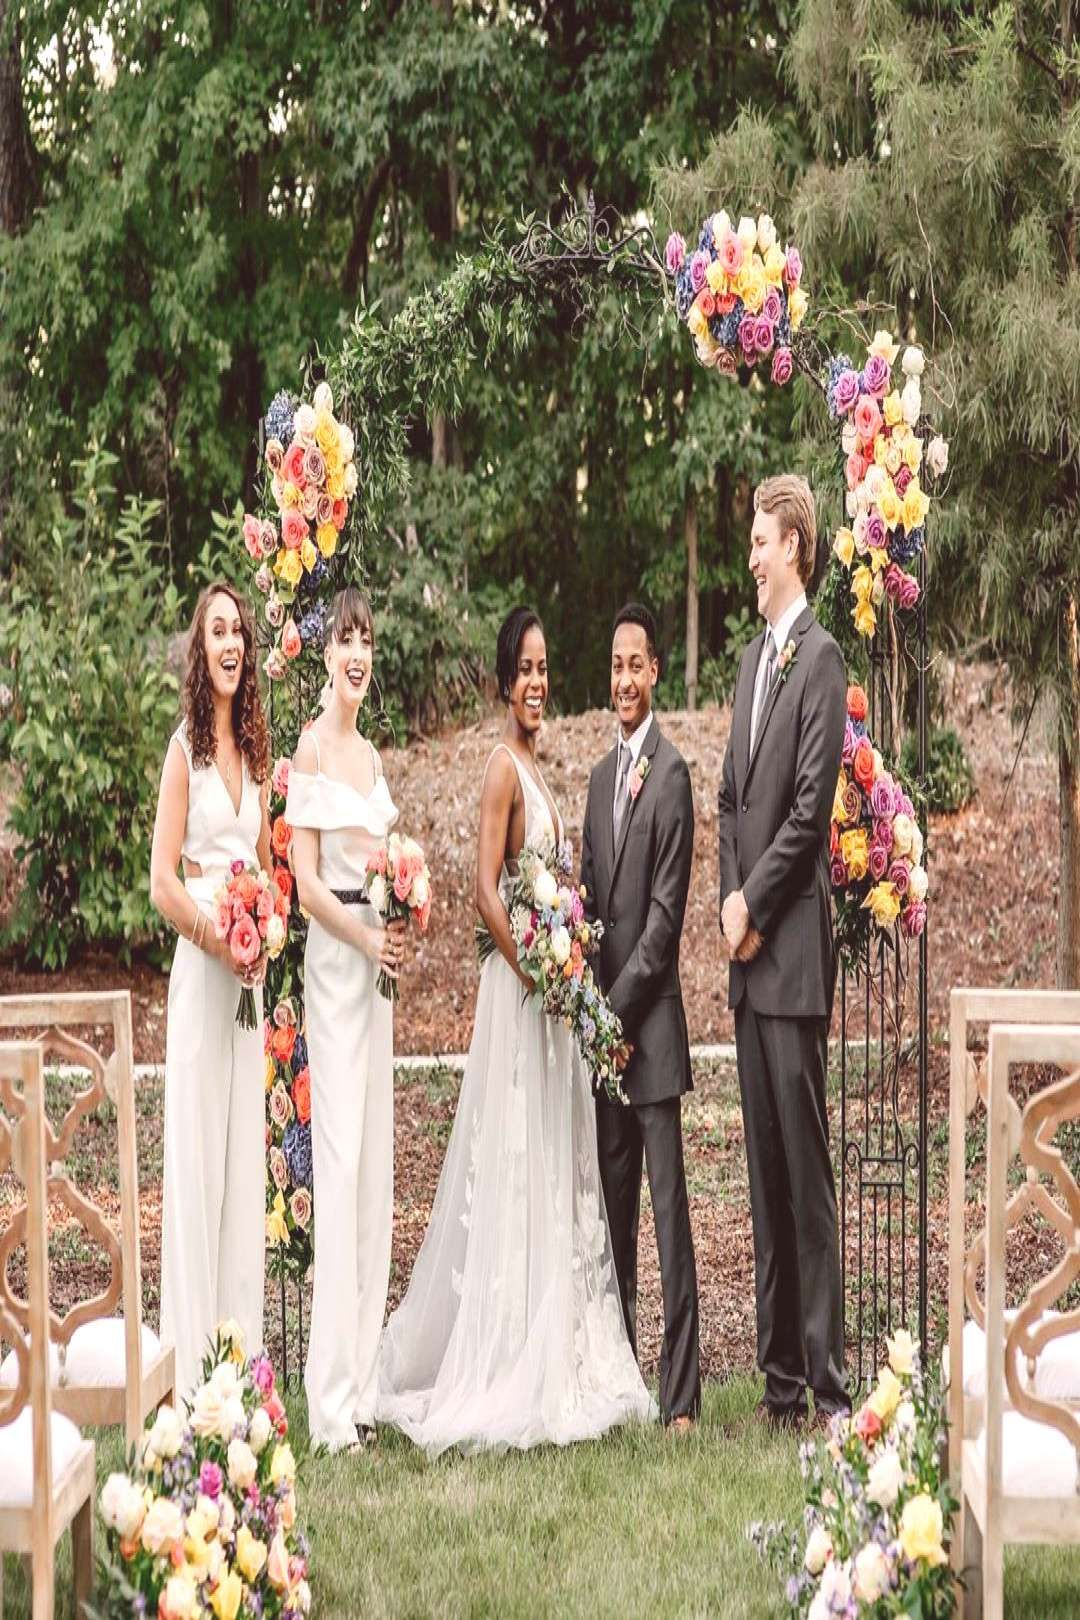 #standingweddingflower #peoplepeople #sunshine #deserves #colorful #because #florals #outdoor #gloomy #some #day #and #a #5 Because a gloomy day deserves some sunshine ️ colorful florals Y...